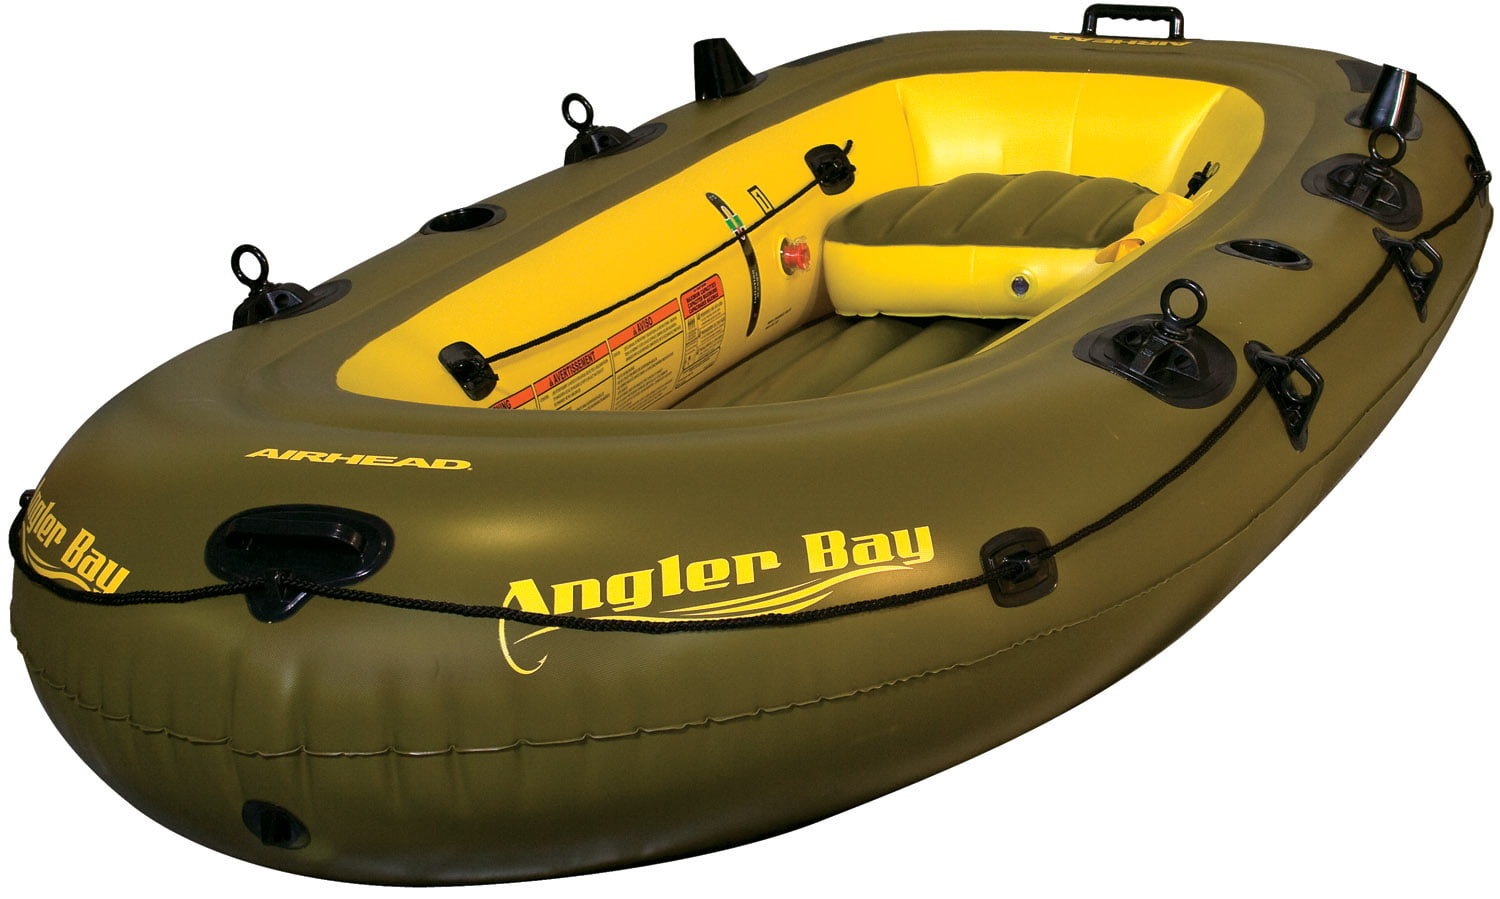 ANGLER BAY Inflatable Boat, 4 person by AIRHEAD SPORTS GROUP